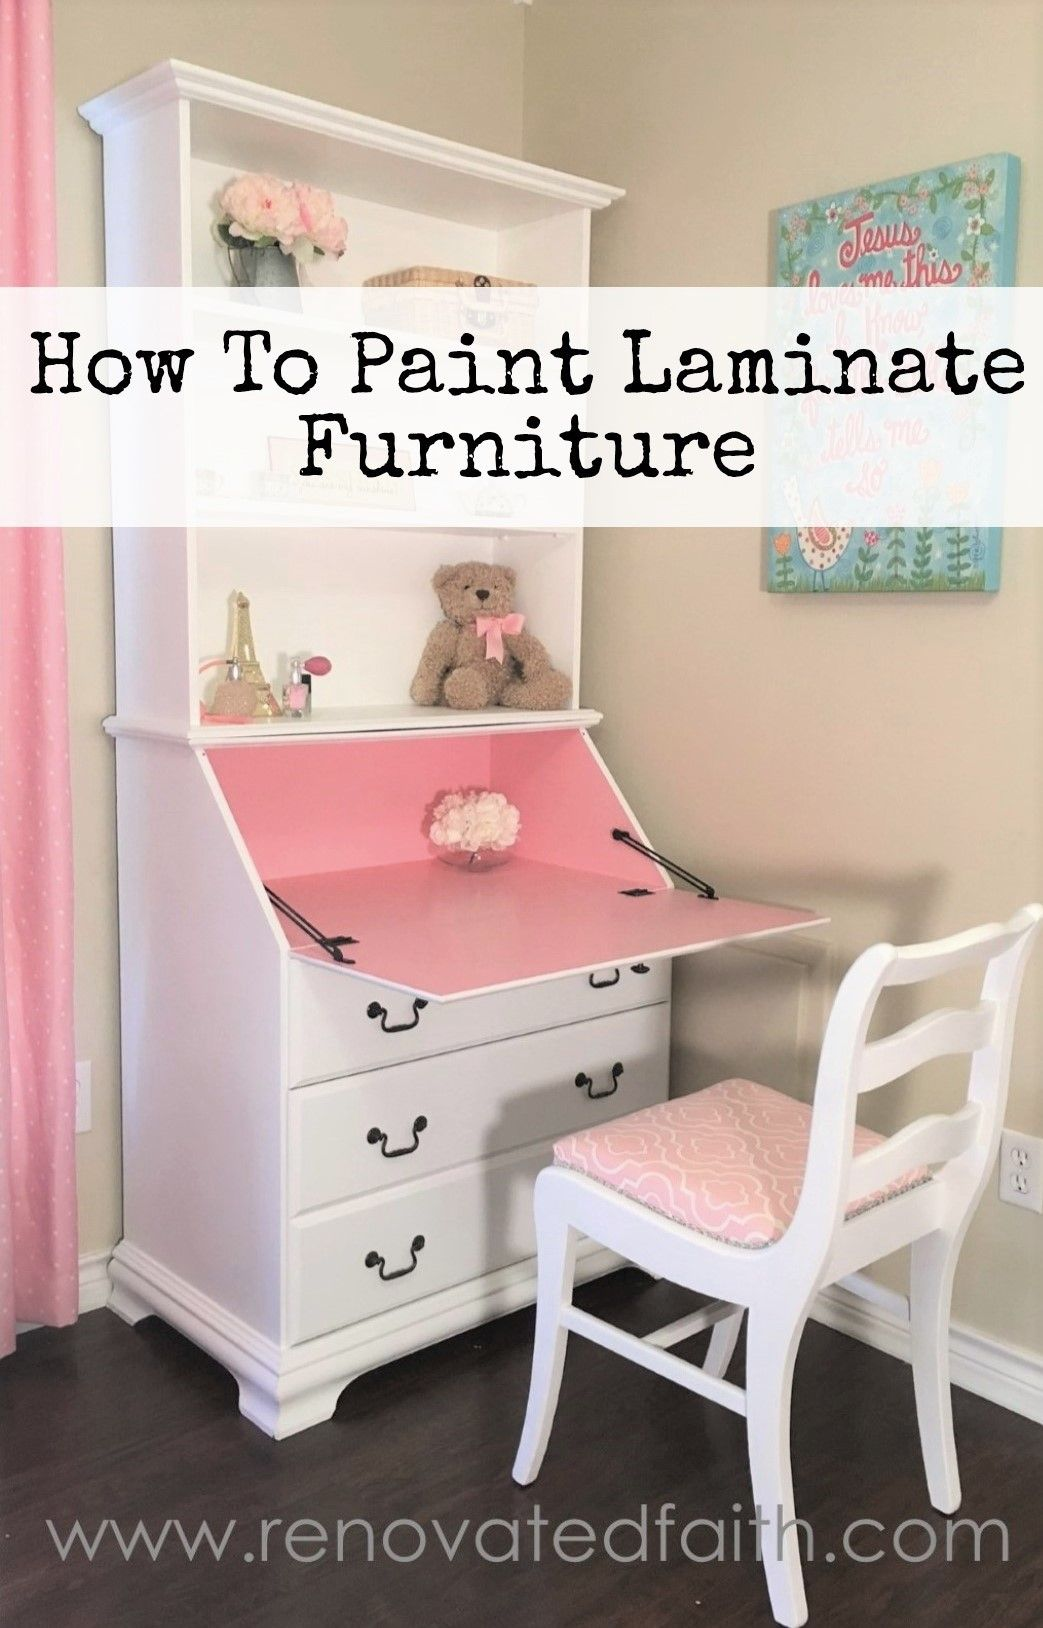 Photo of How To Paint Laminate Furniture {So It Looks Like Painted Wood}